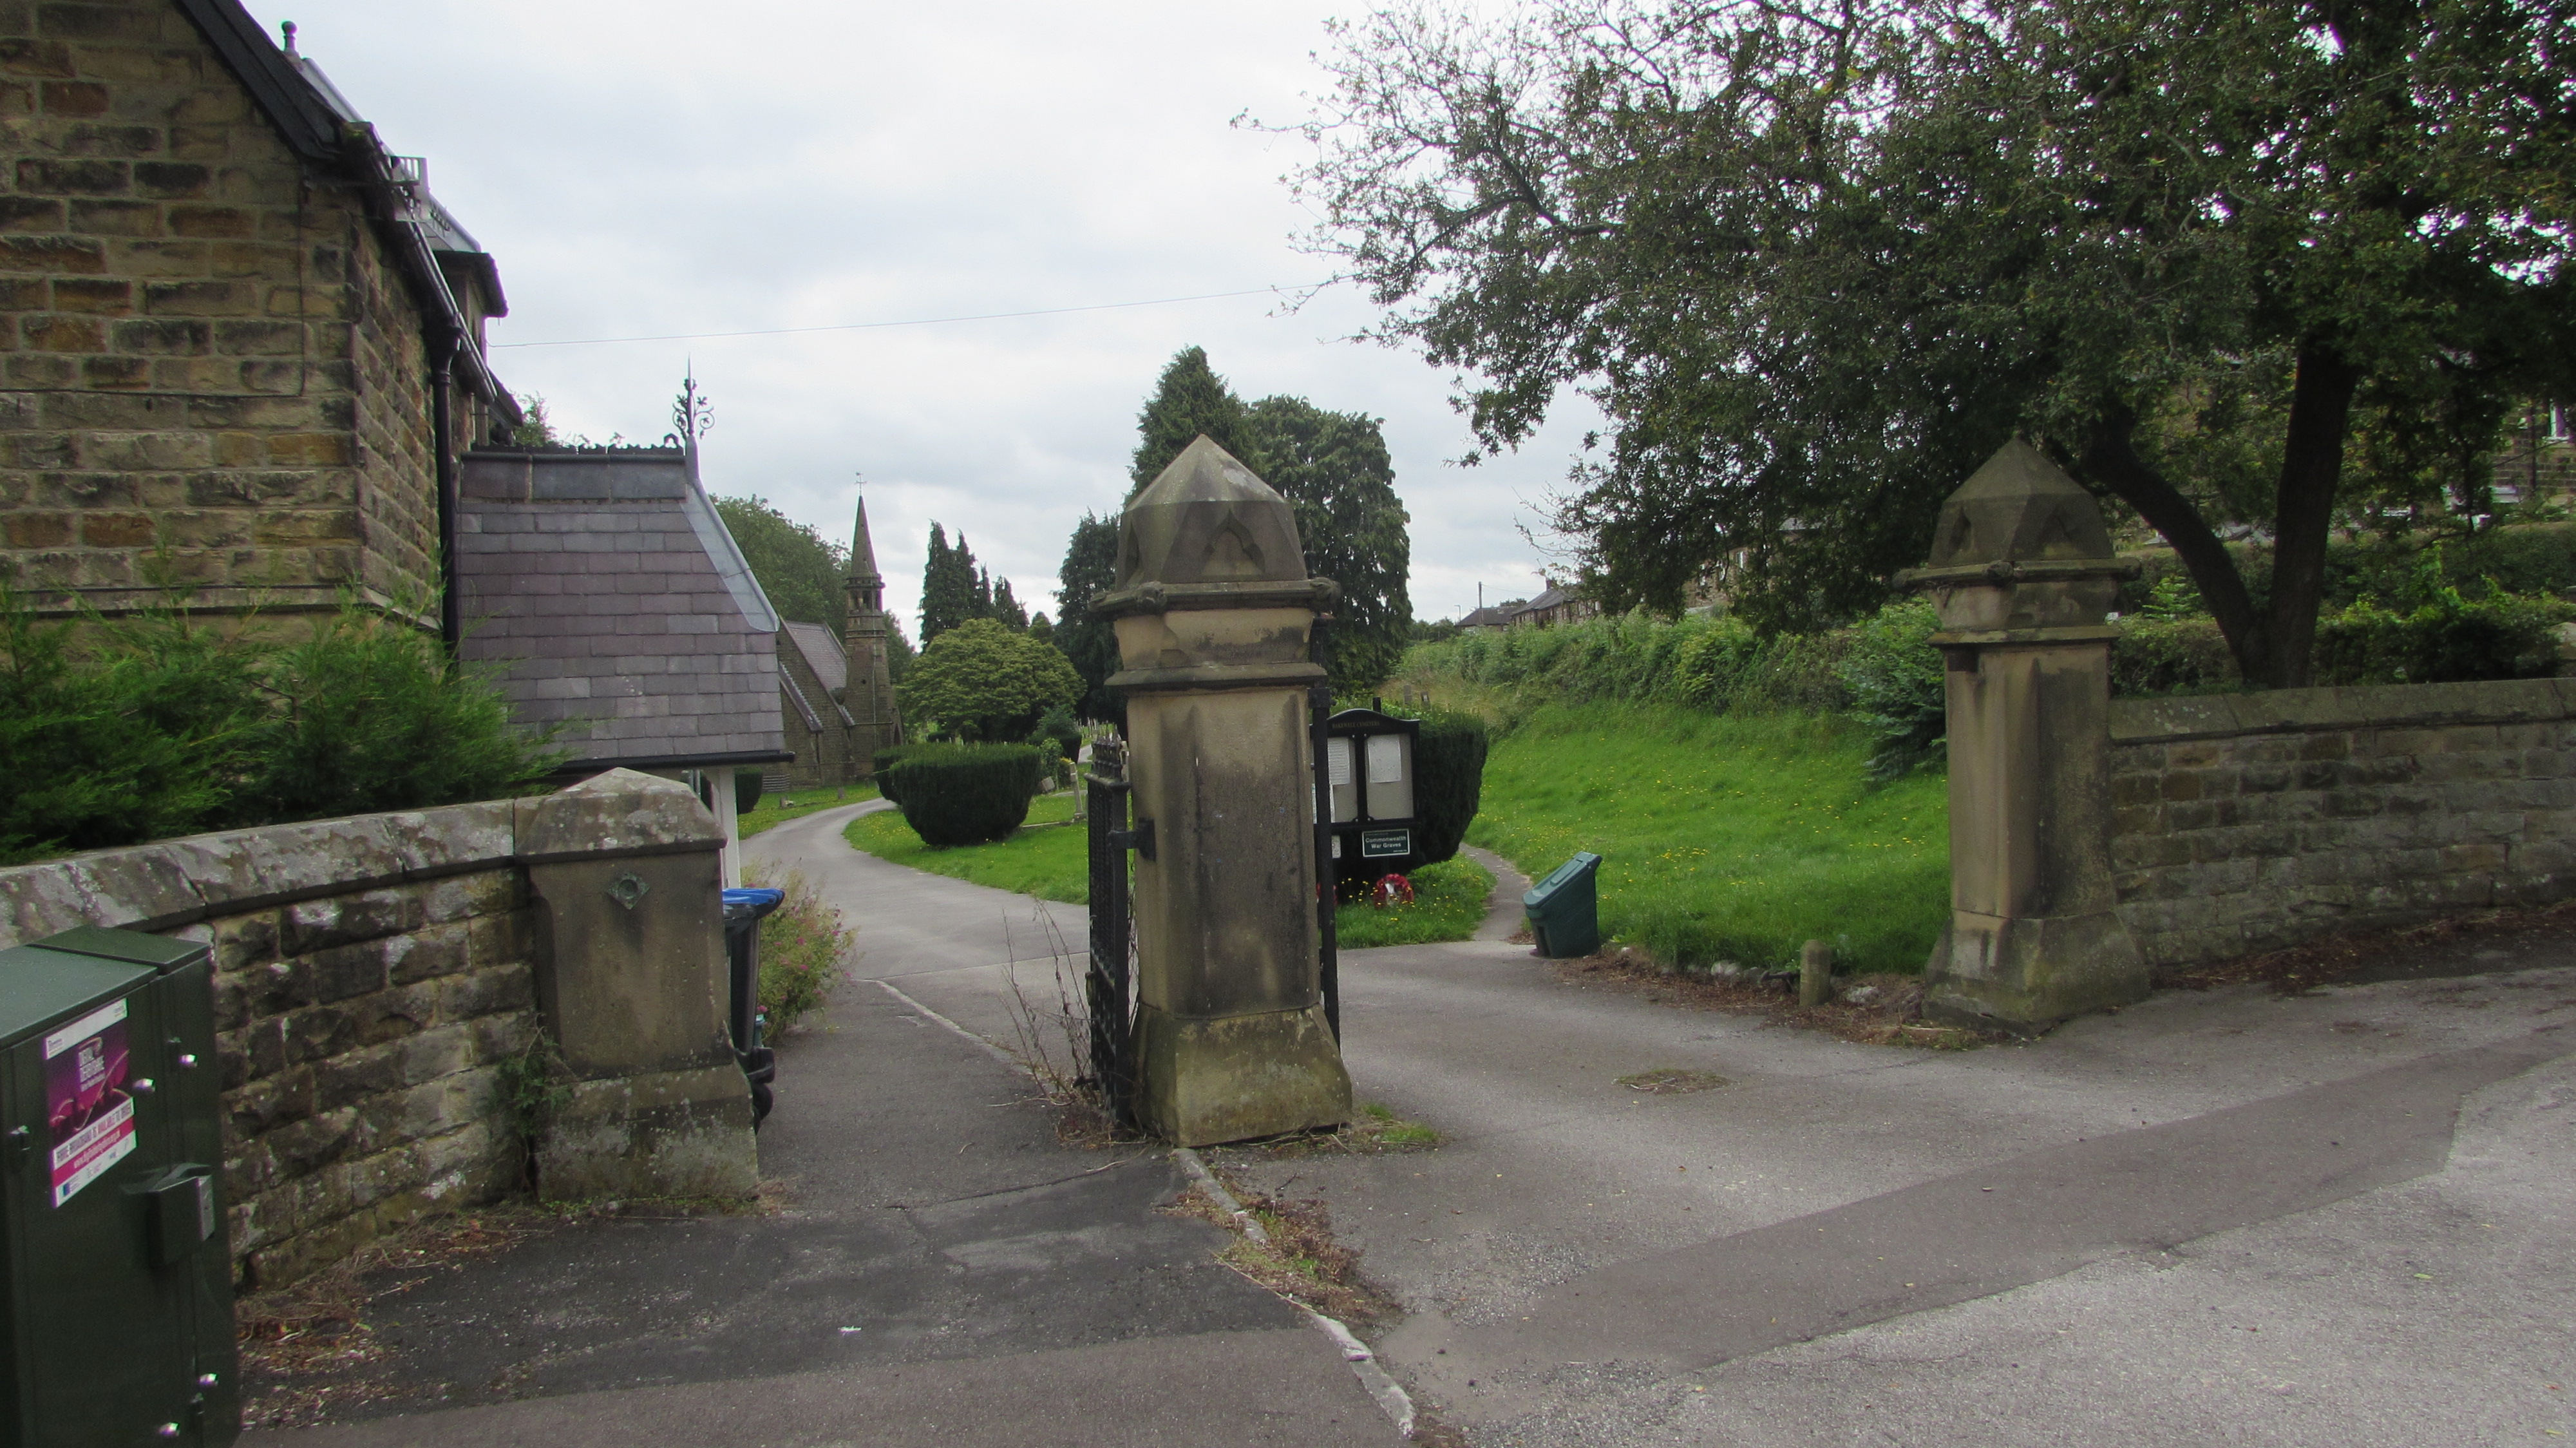 Entrance To Bakewell Cemetery (Taken August 2019)